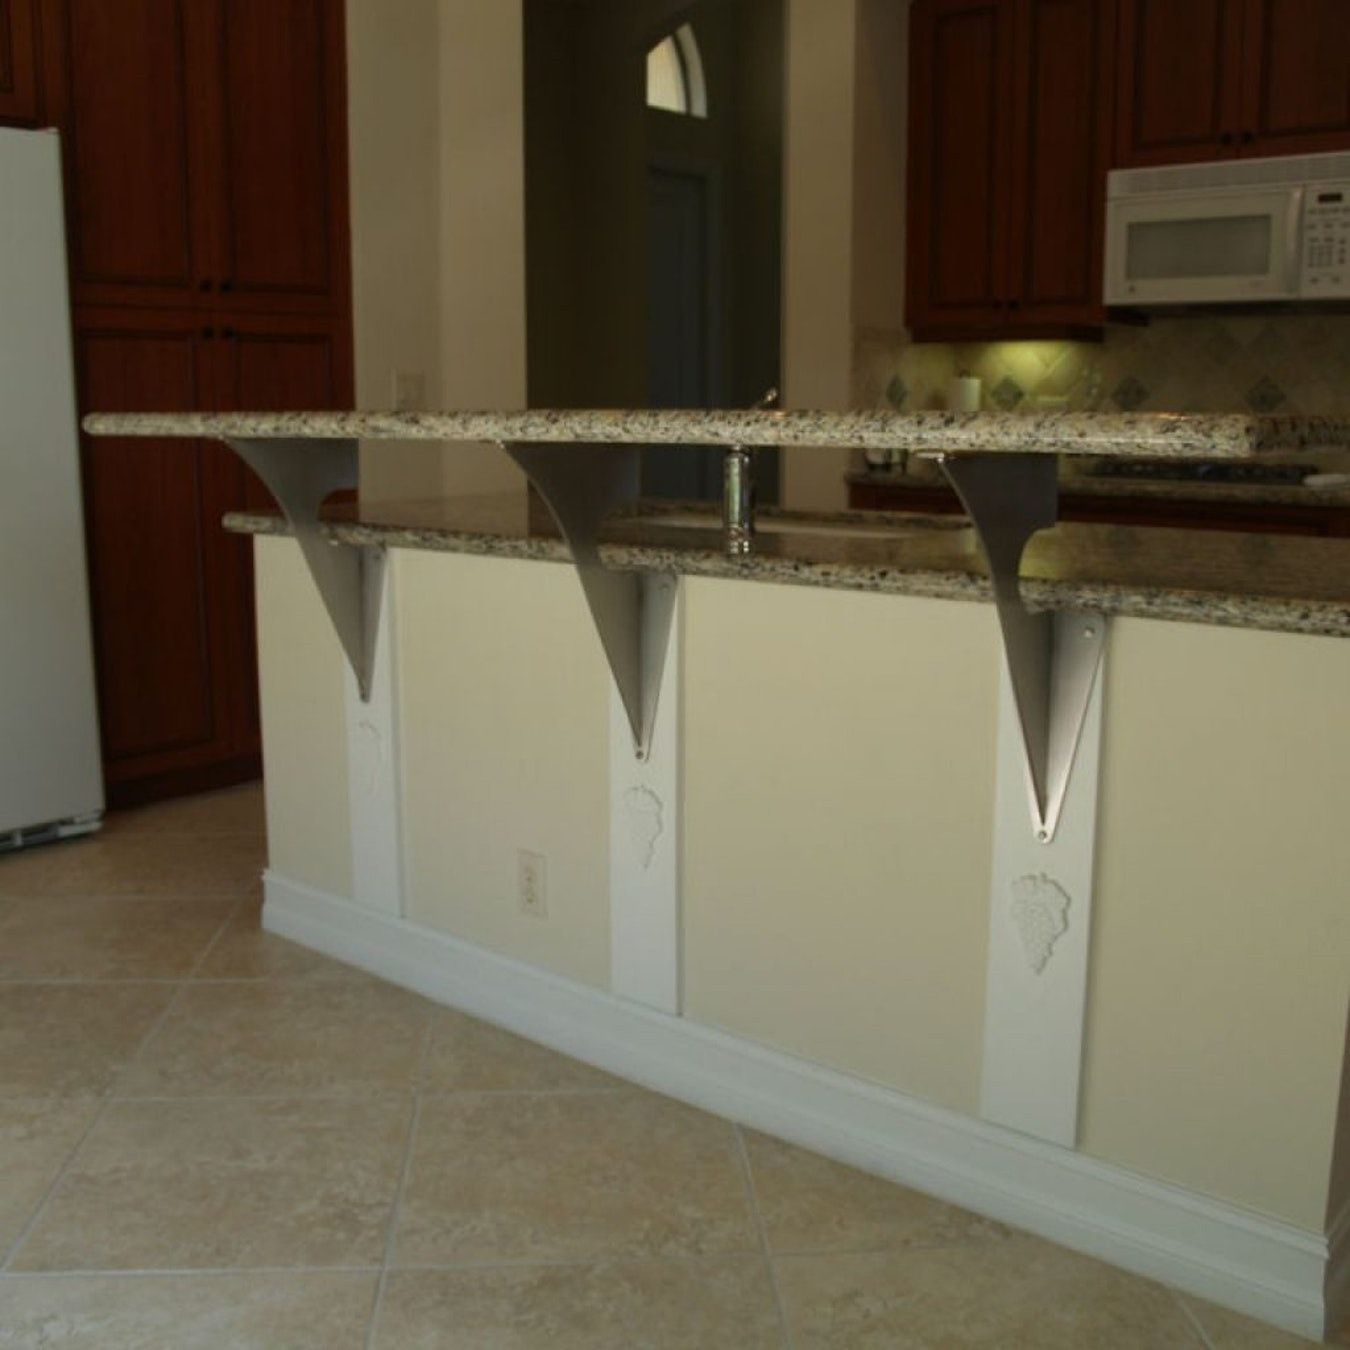 Image Result For How To Hold Up An Overhang On A Counter Countertop Support Brackets Countertop Support Kitchen Remodel Countertops